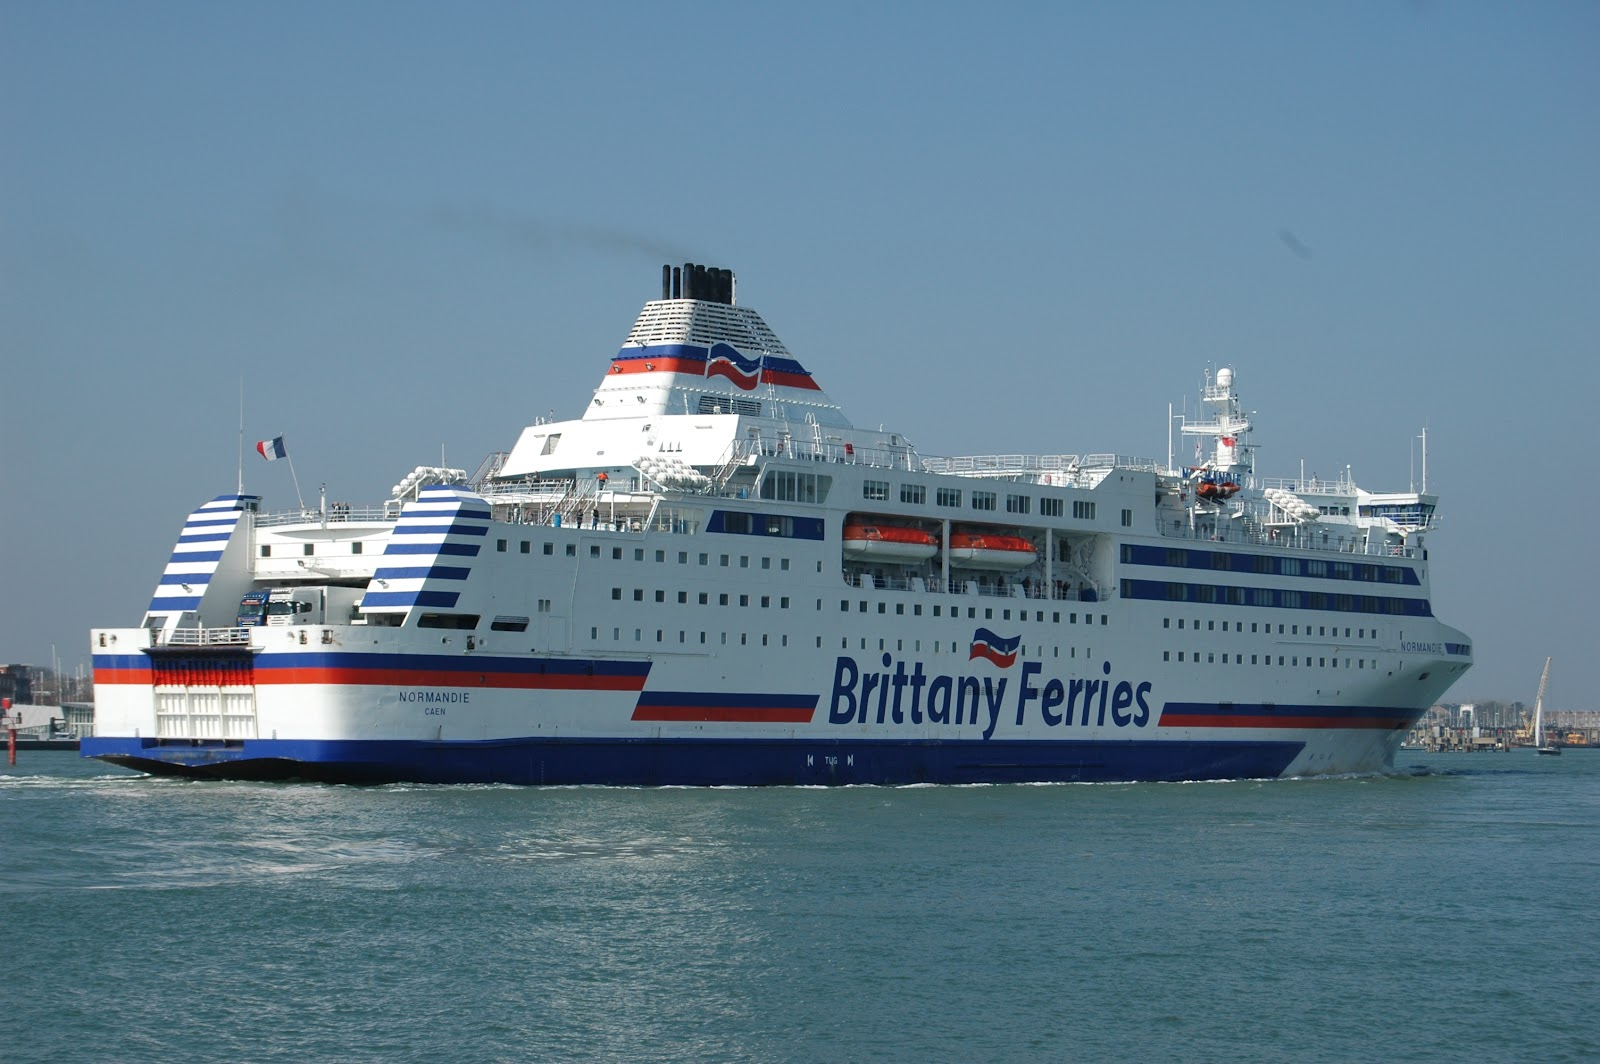 vmf brittany ferries normandie arriving portsmouth. Black Bedroom Furniture Sets. Home Design Ideas